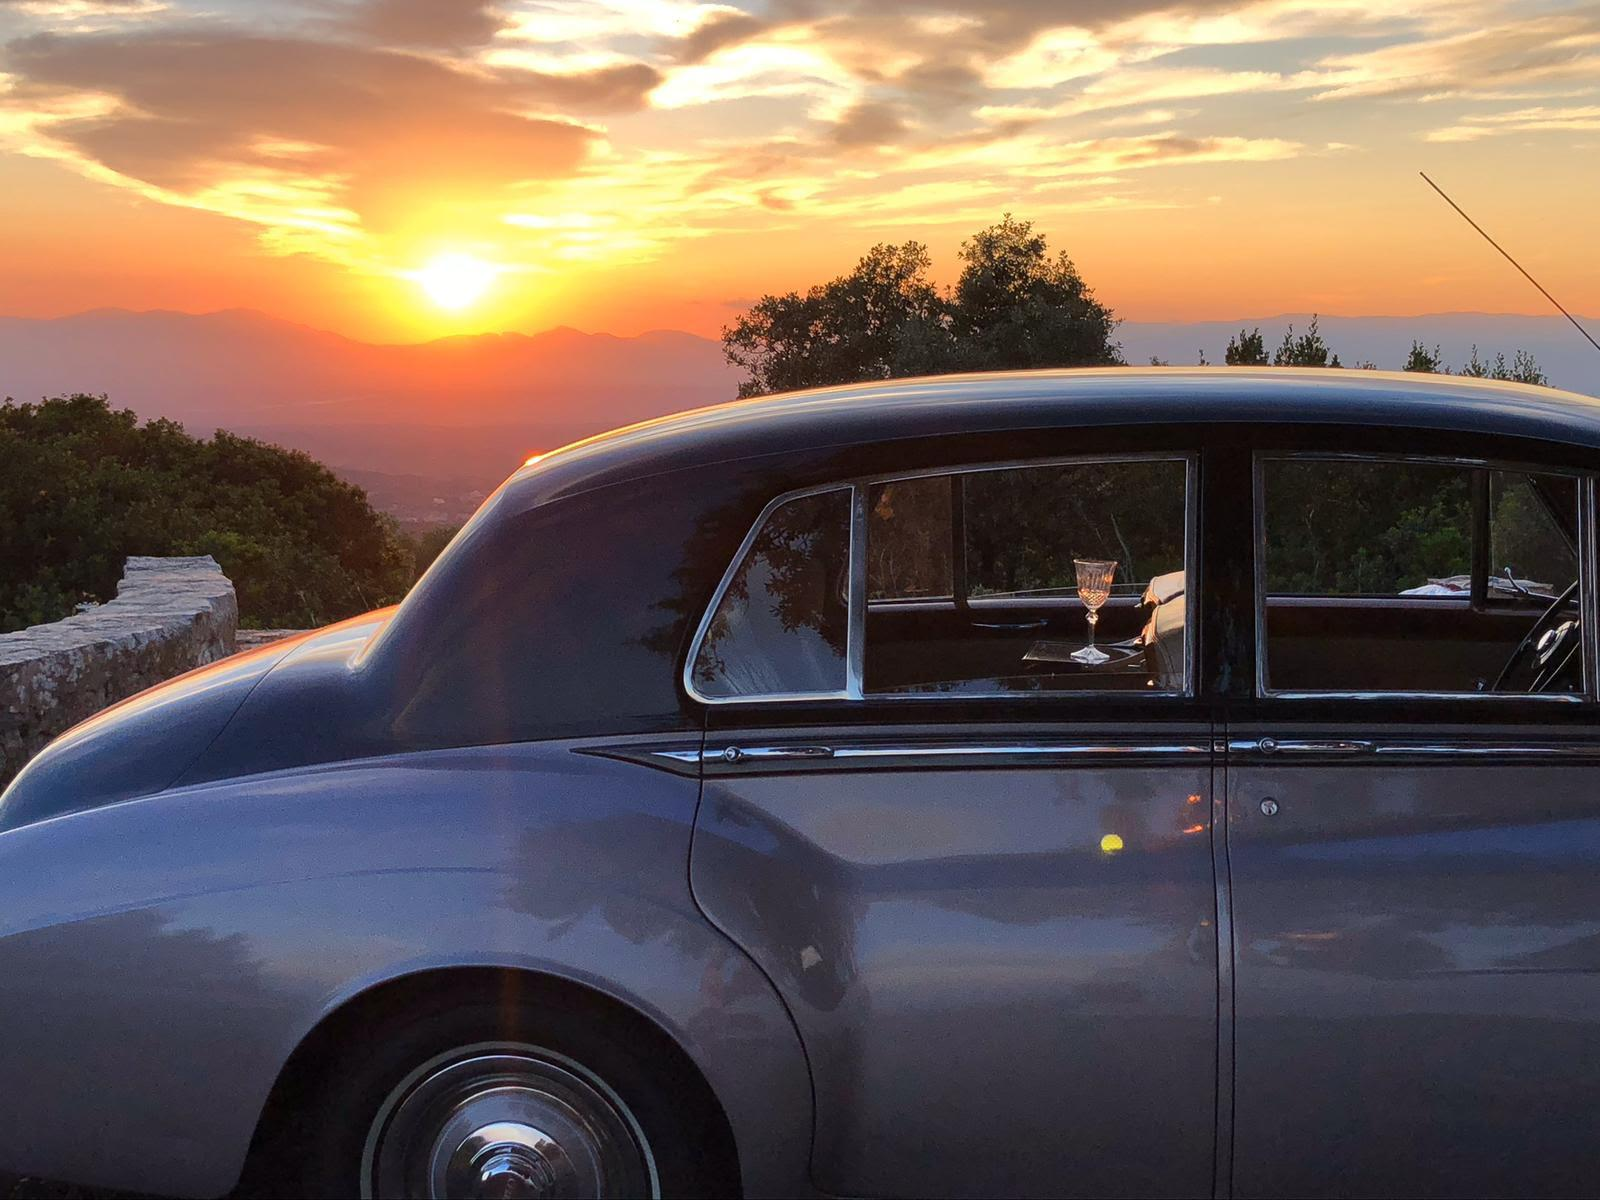 Bentley doing what it does best. Elegance and style, sunset at Randa.